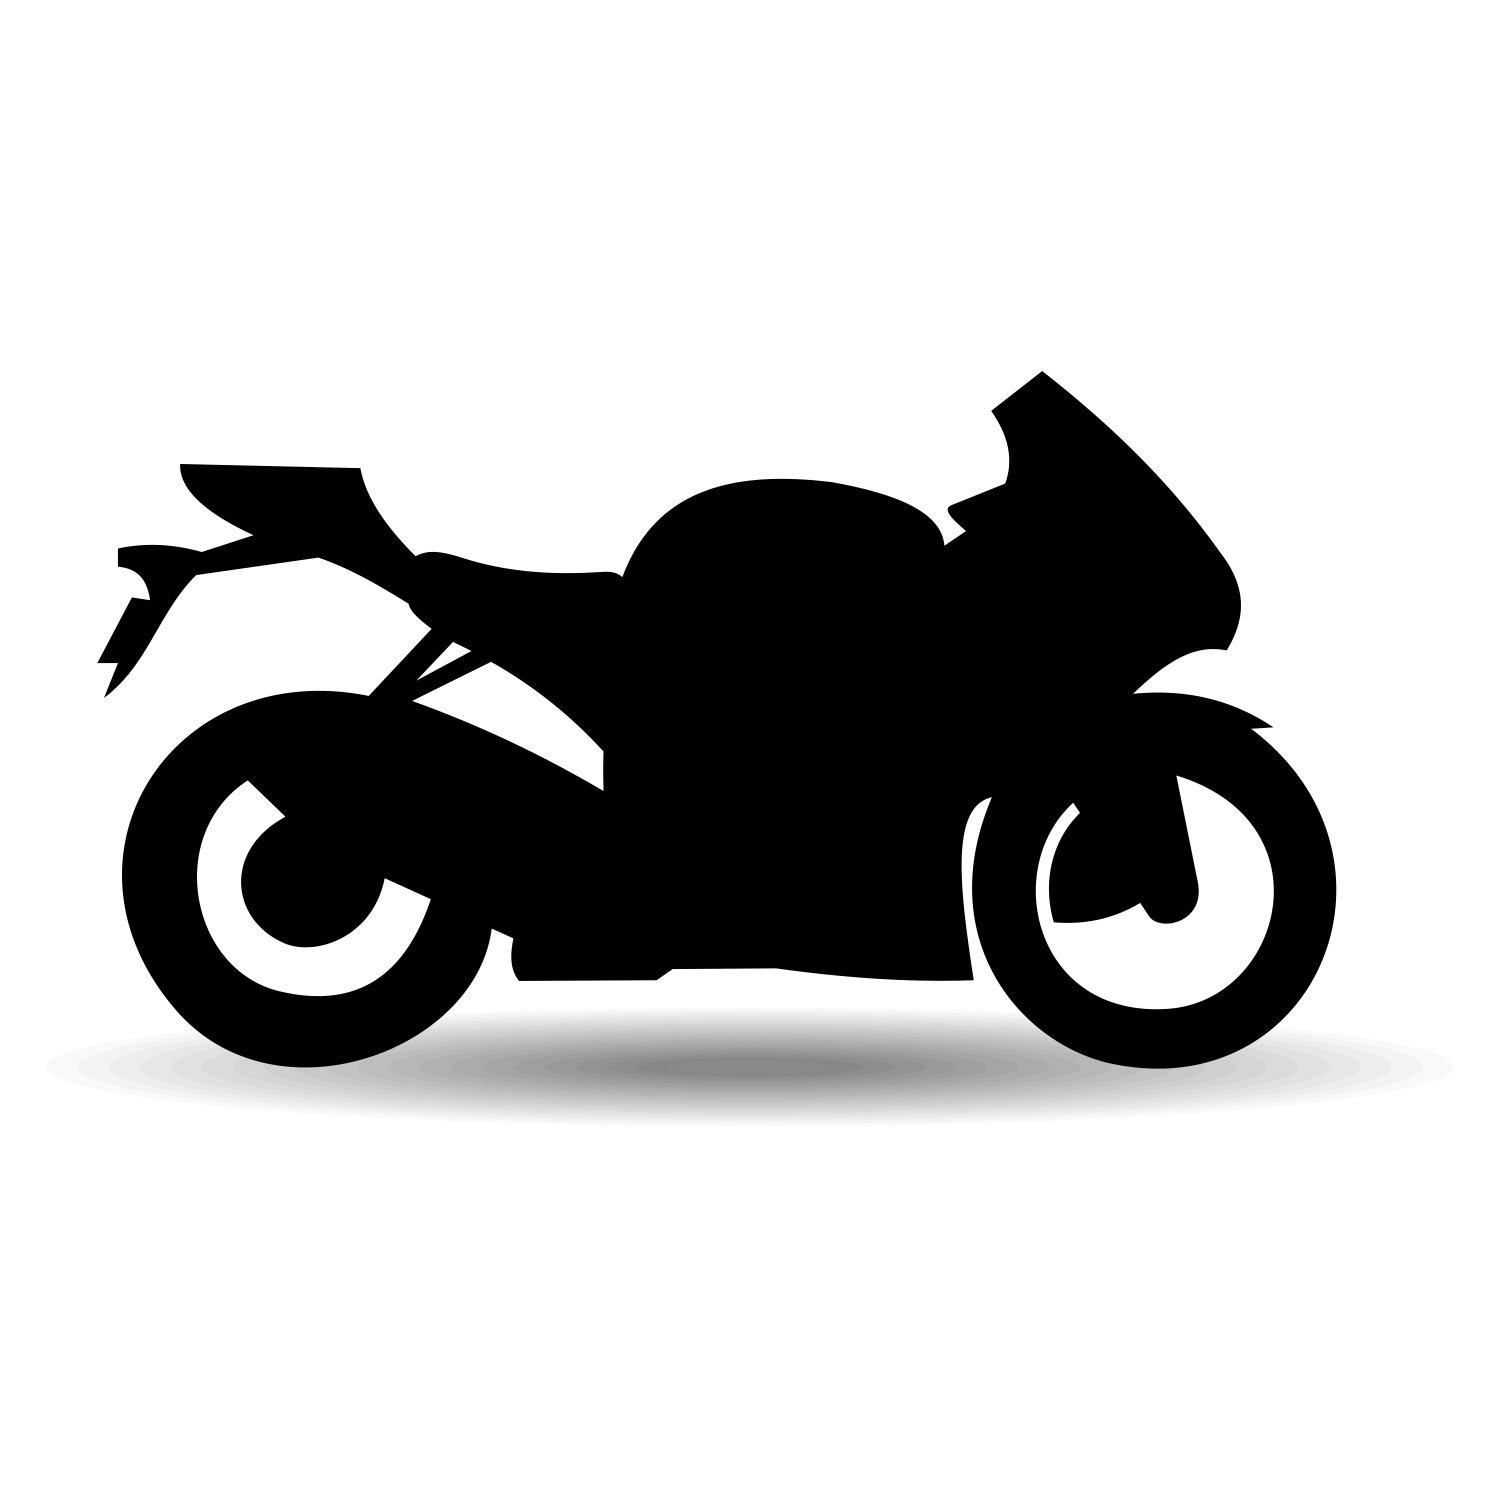 Tags: Motorbike , bike , motorcycle